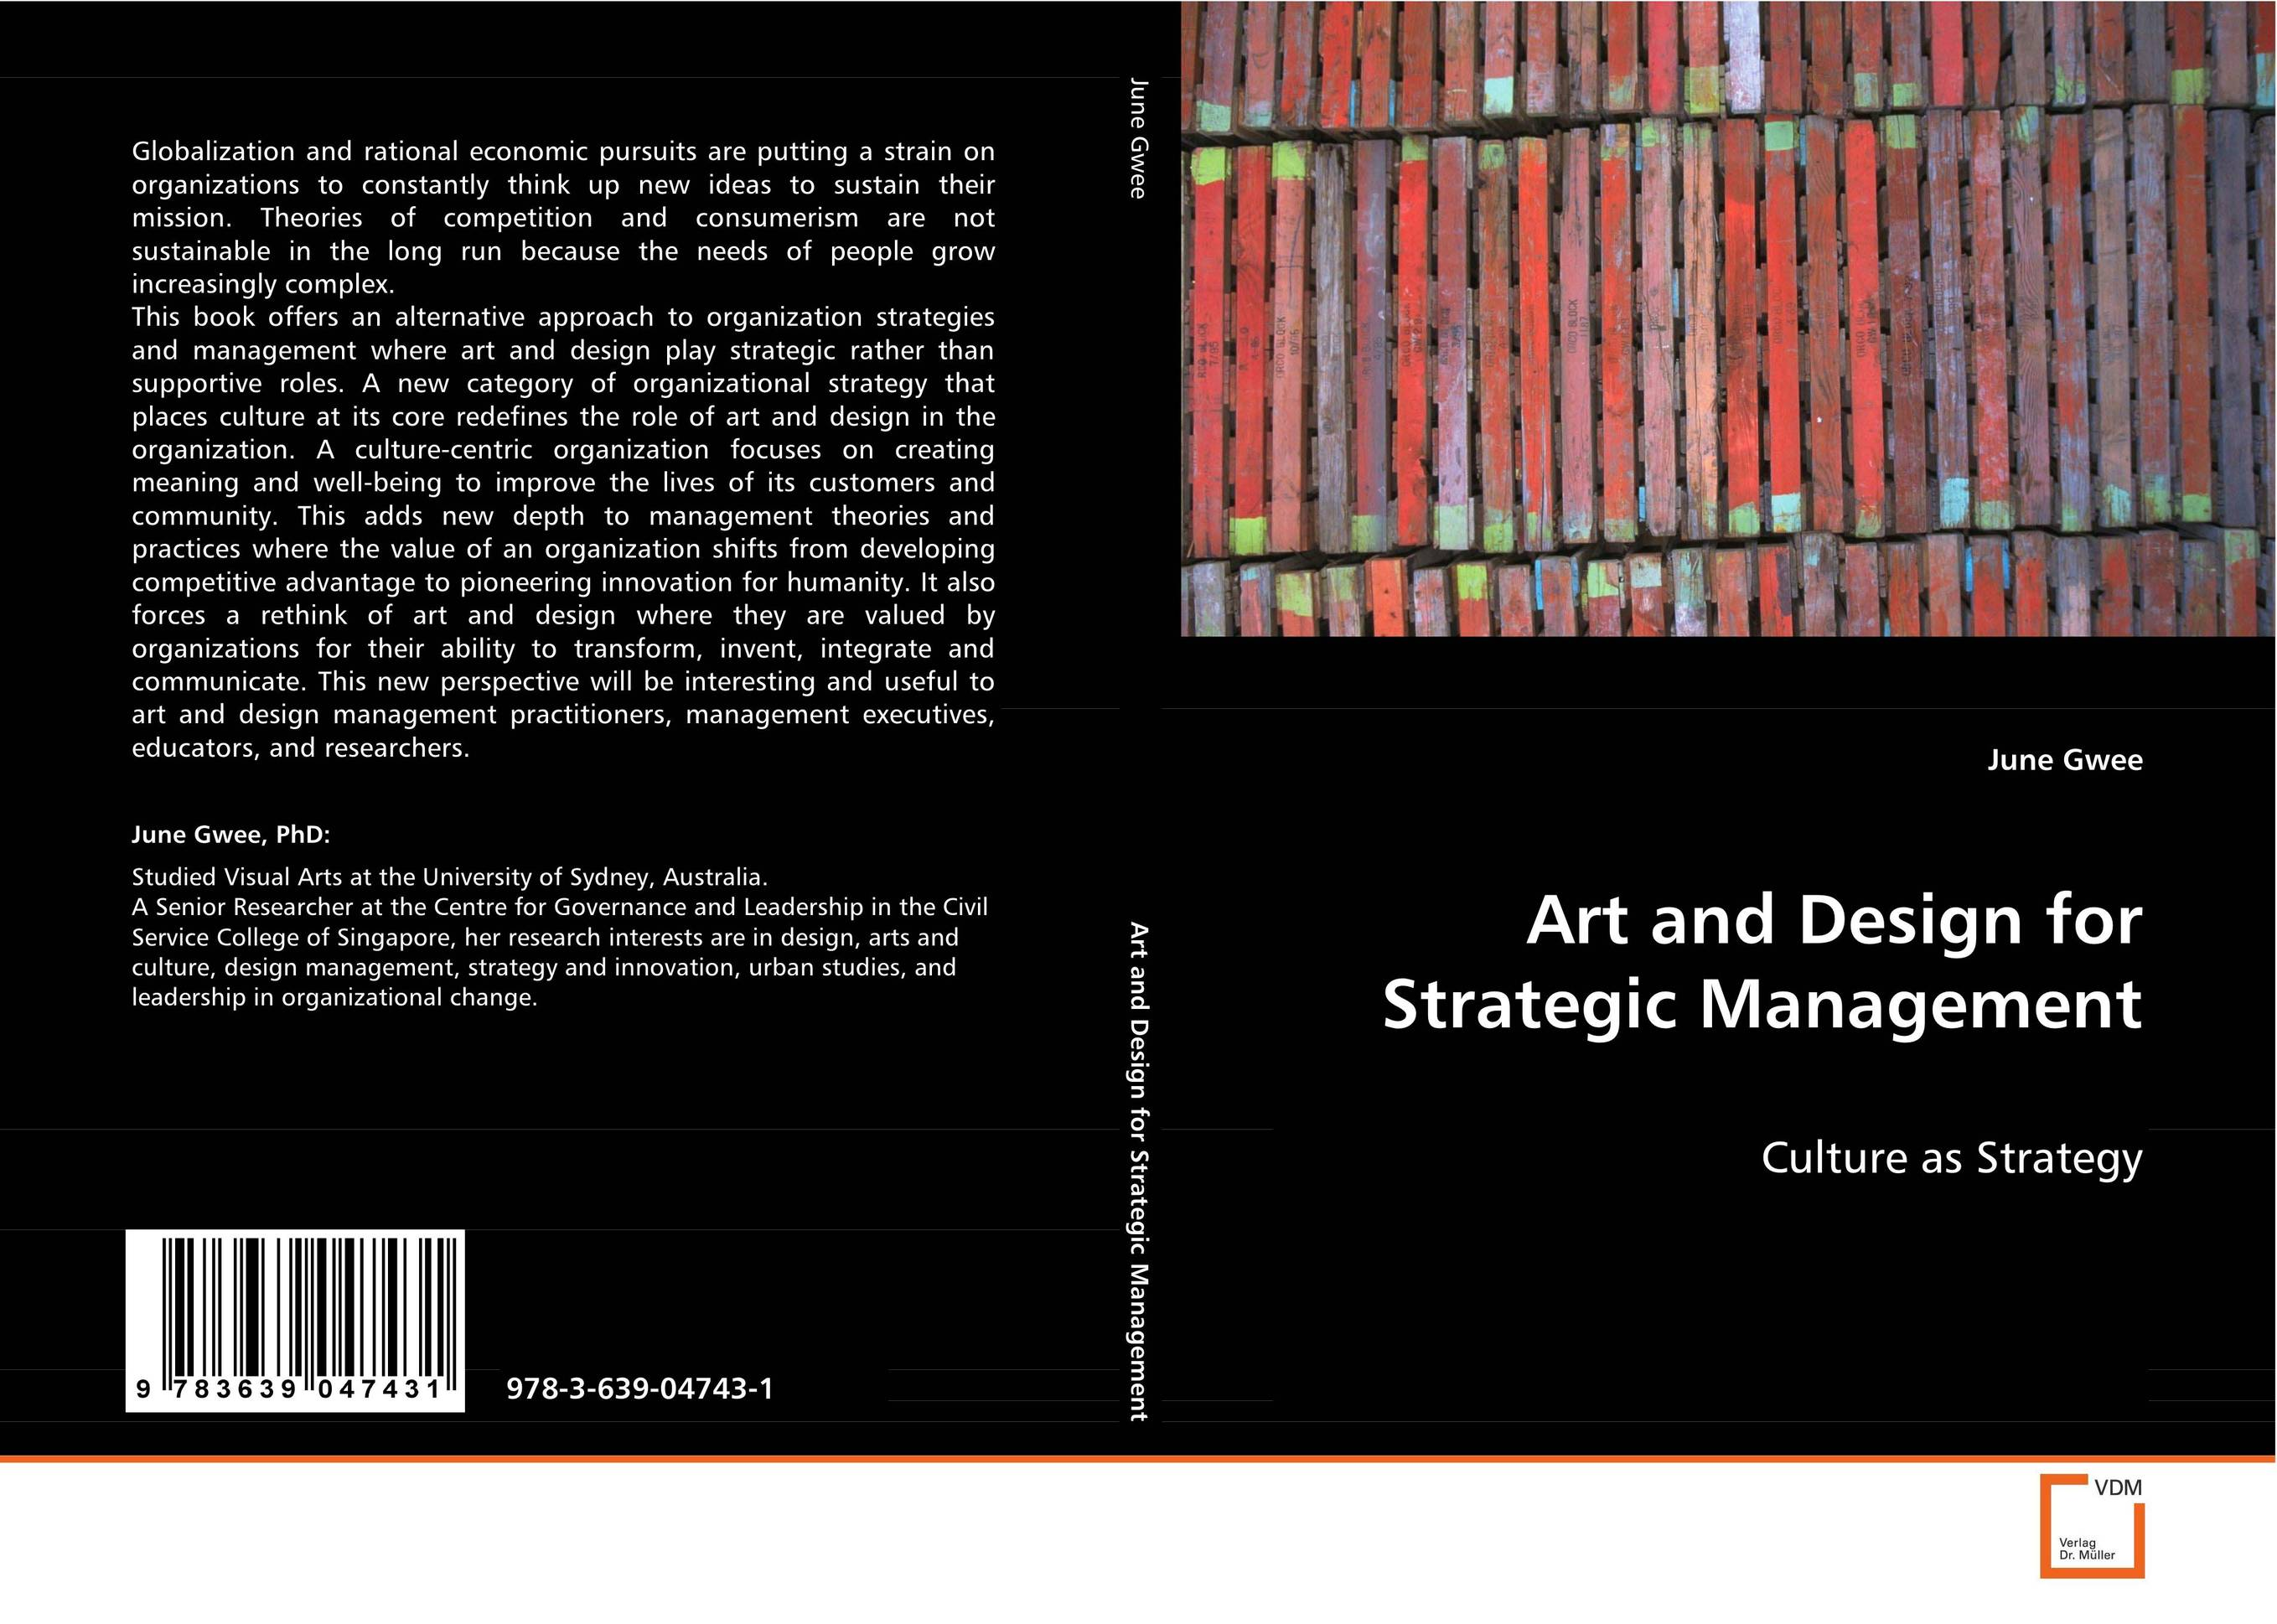 Art and Design for Strategic Management